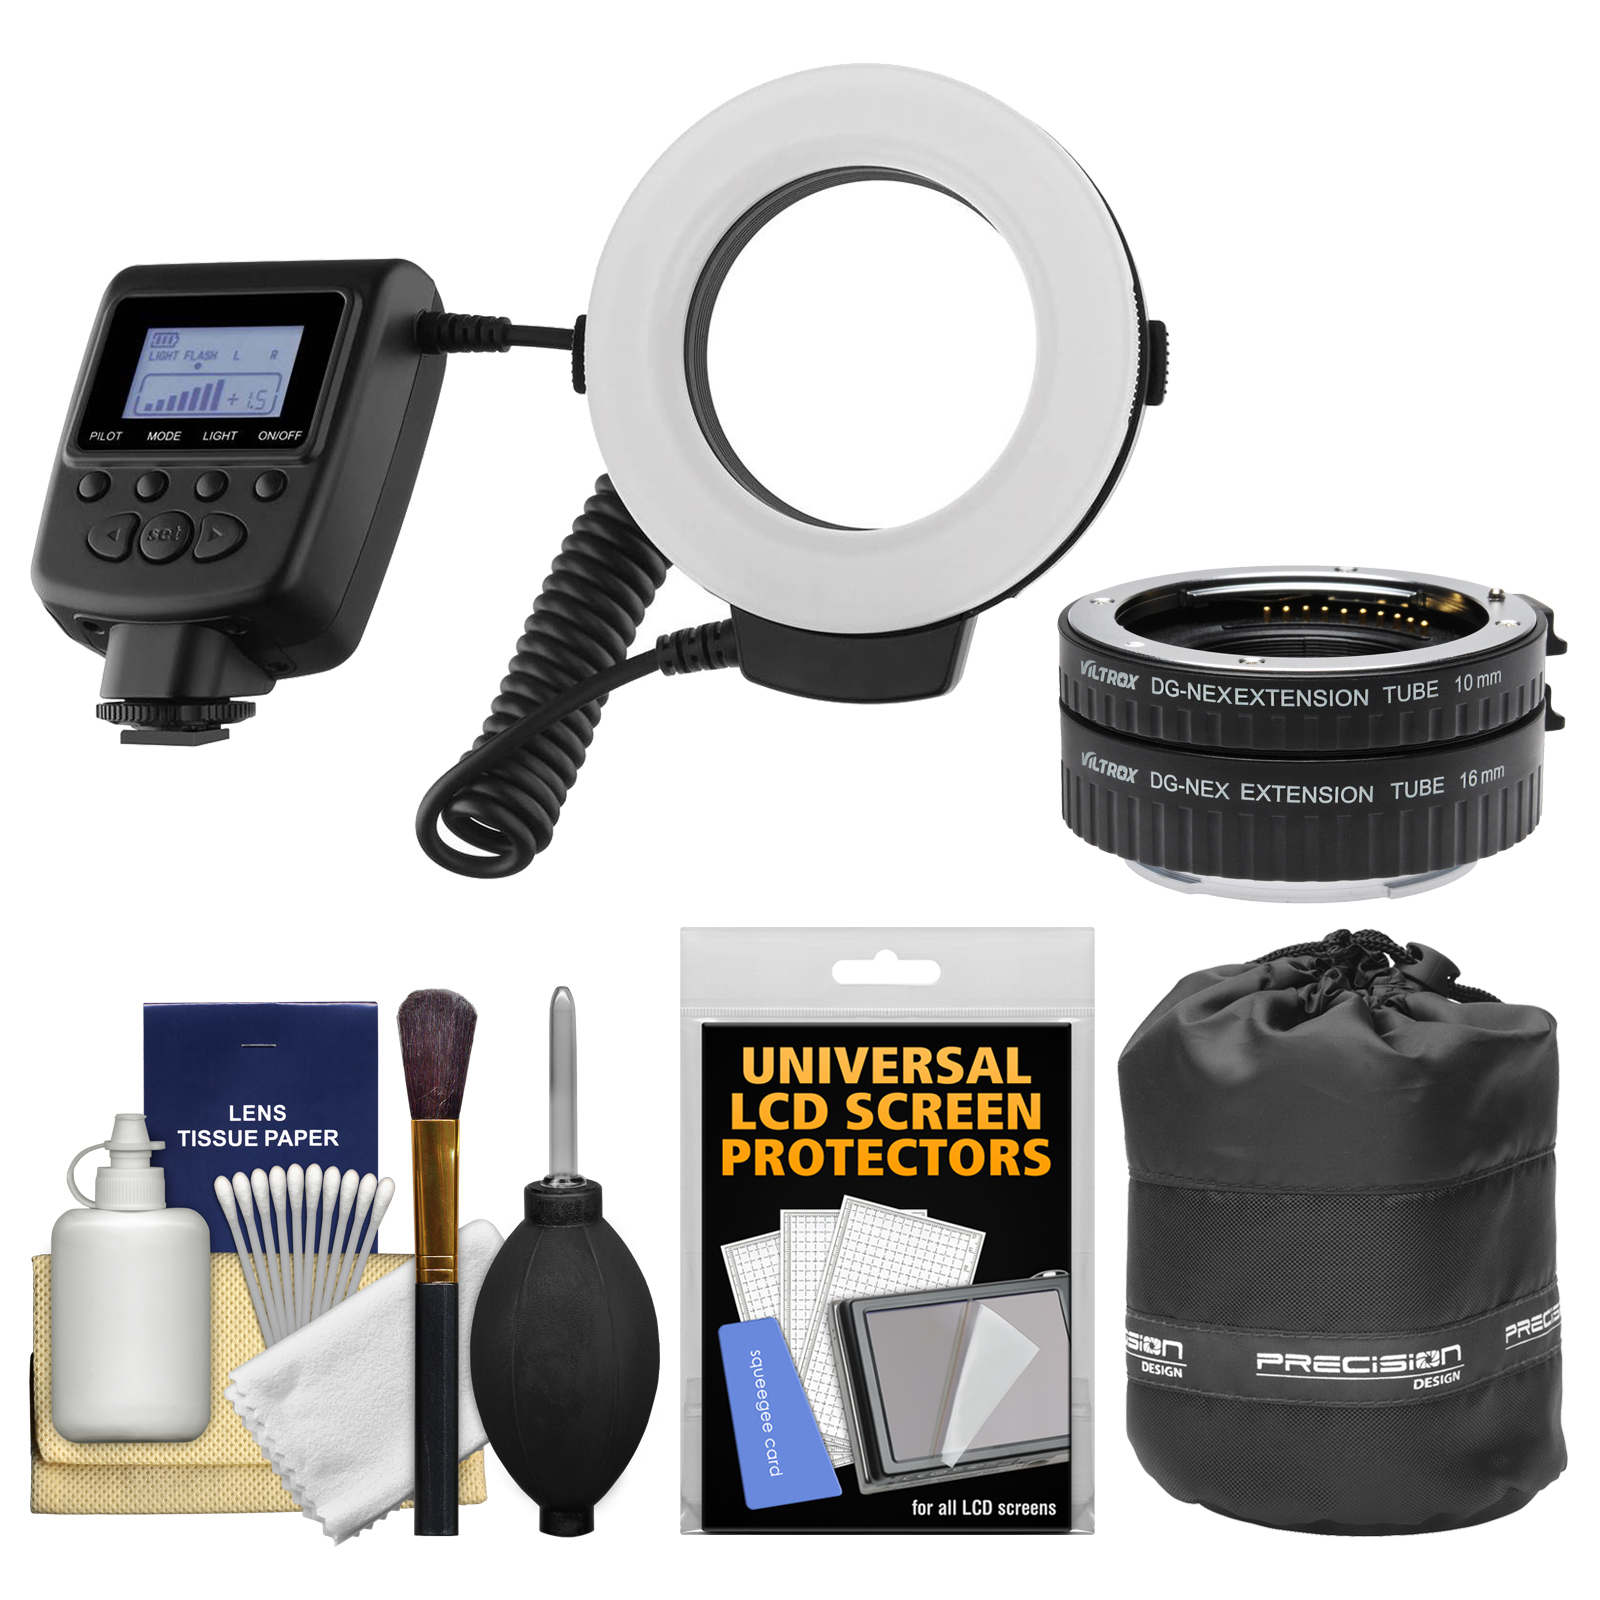 Vivitar Universal Macro 48 LED Ring Light & Flash with Colored Diffusers + Macro Extension Tube Set + Pouch Kit for Sony Alpha E-Mount A7 II, A7R II, A7S, A3000, A5100, A6000 Camera